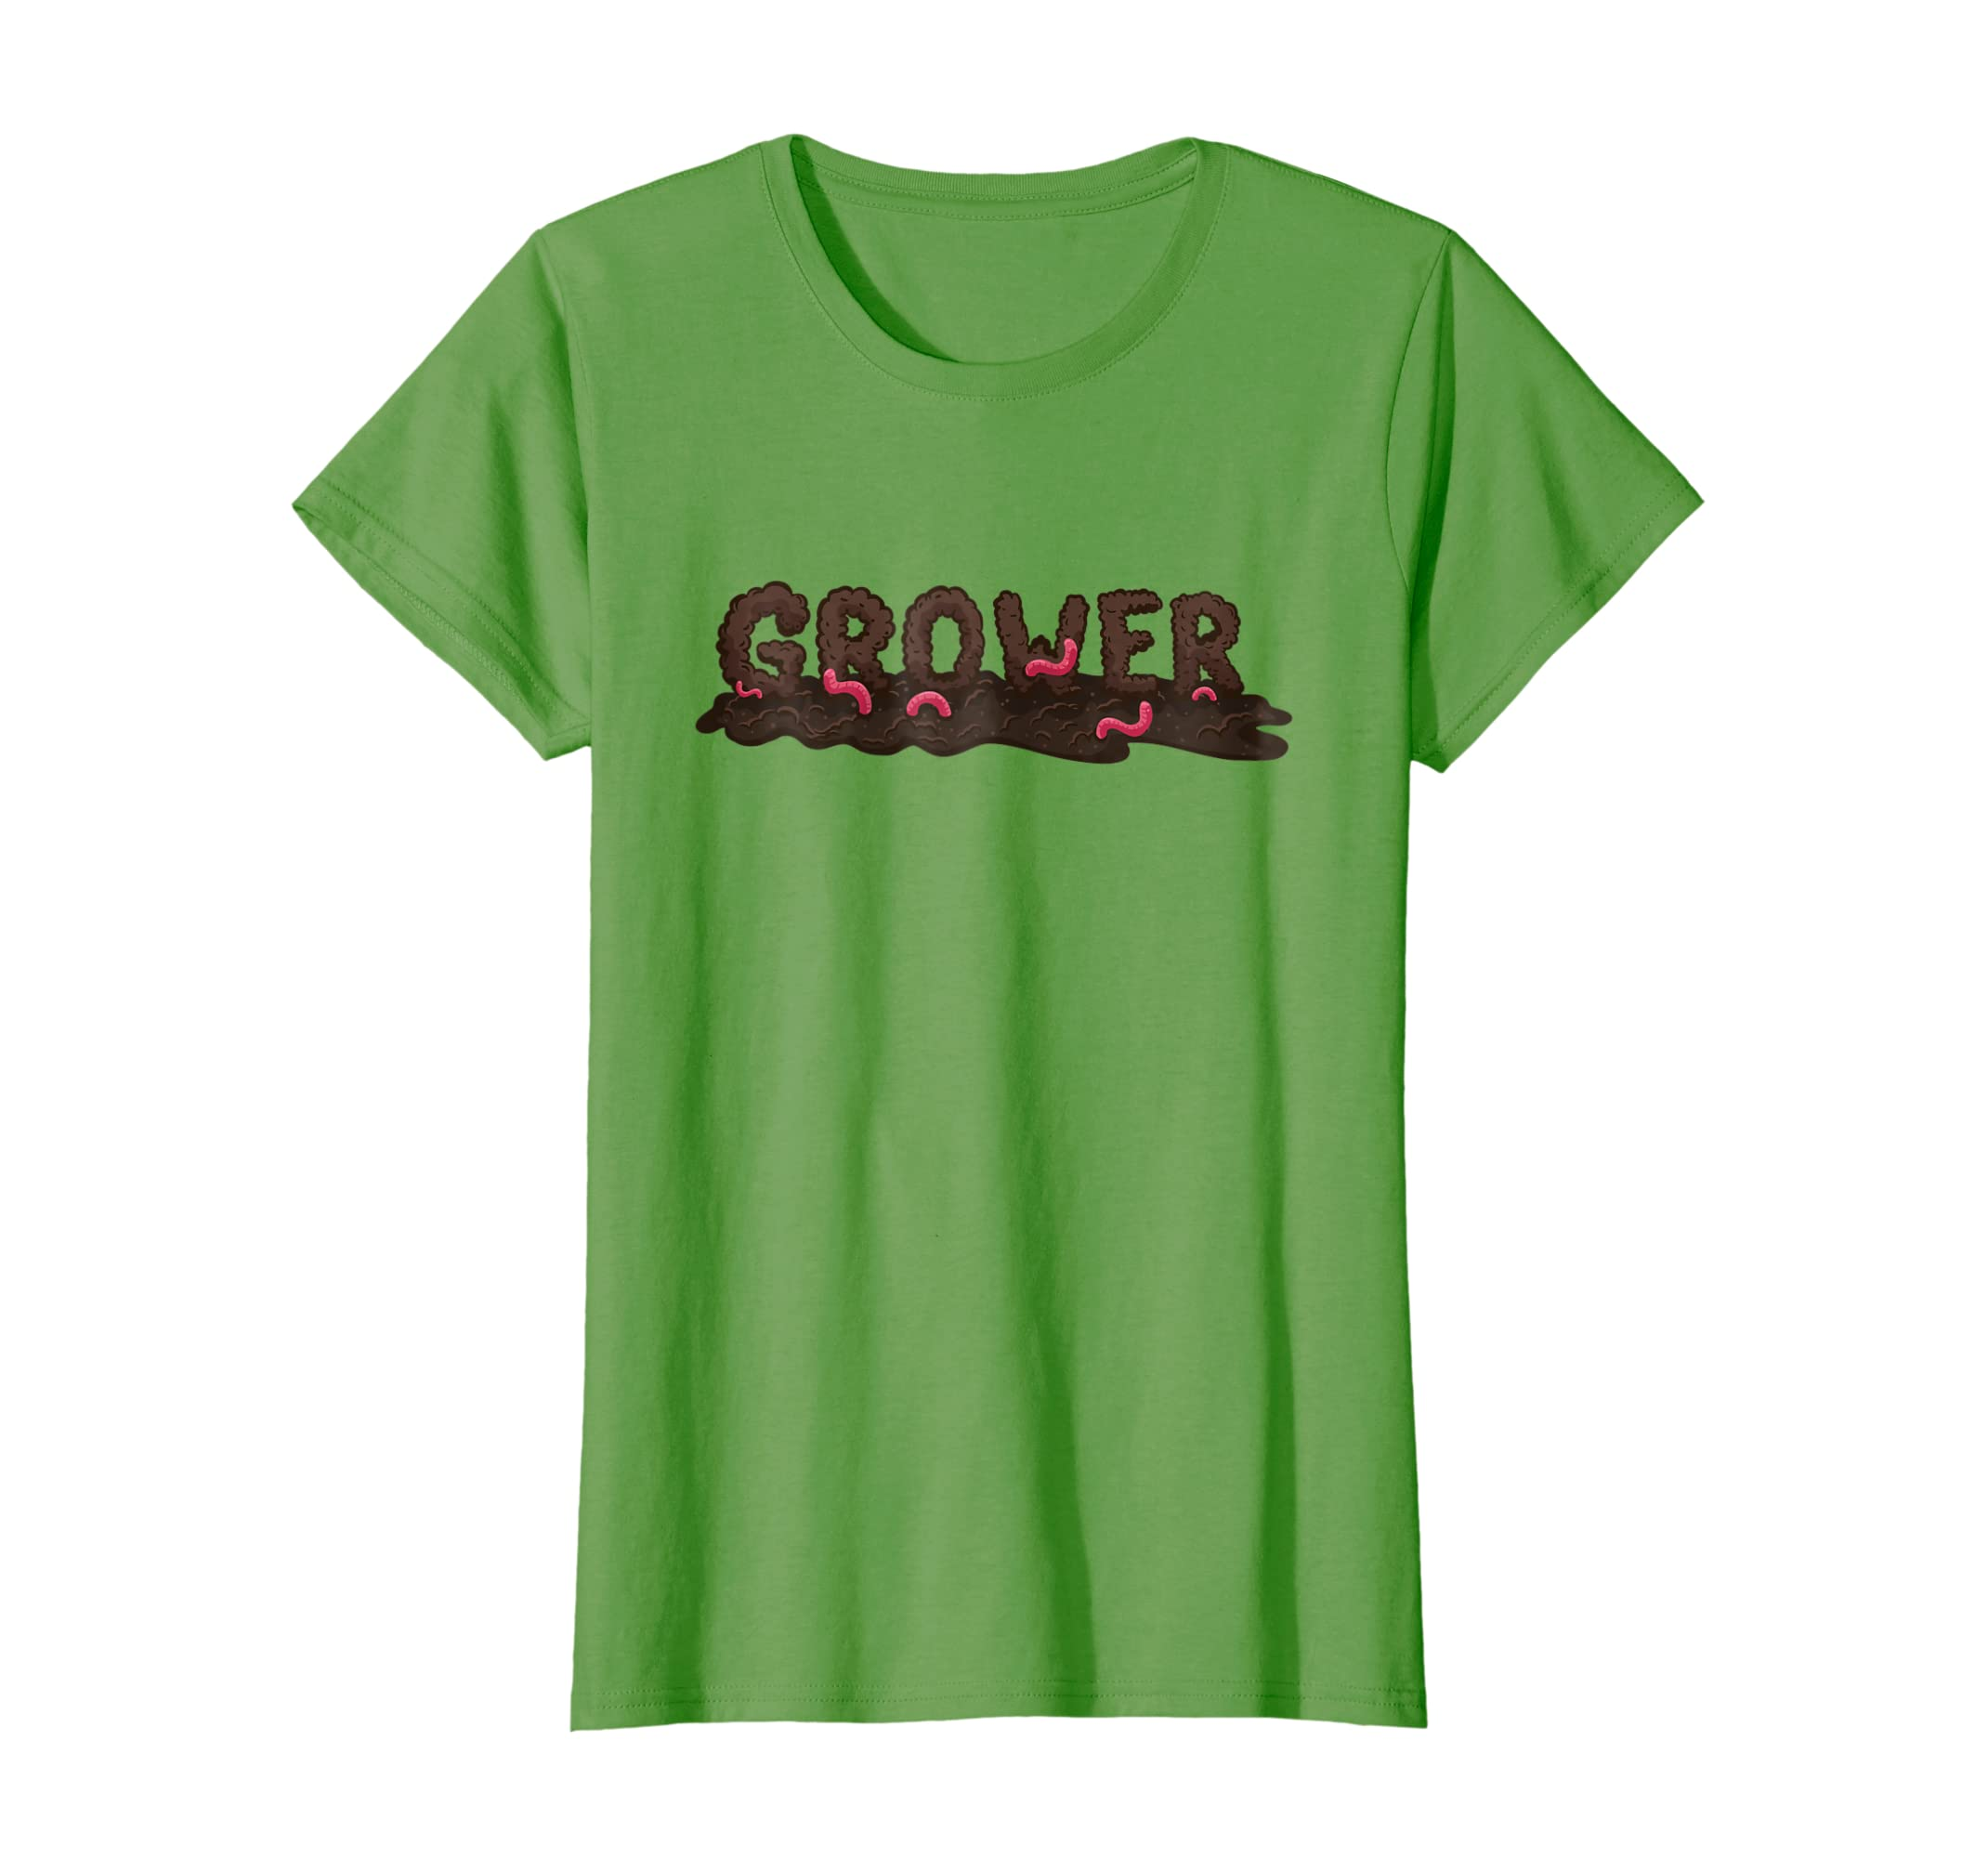 5cb11696 Amazon.com: Grower Gardener Gardening Funny T Shirt: Clothing